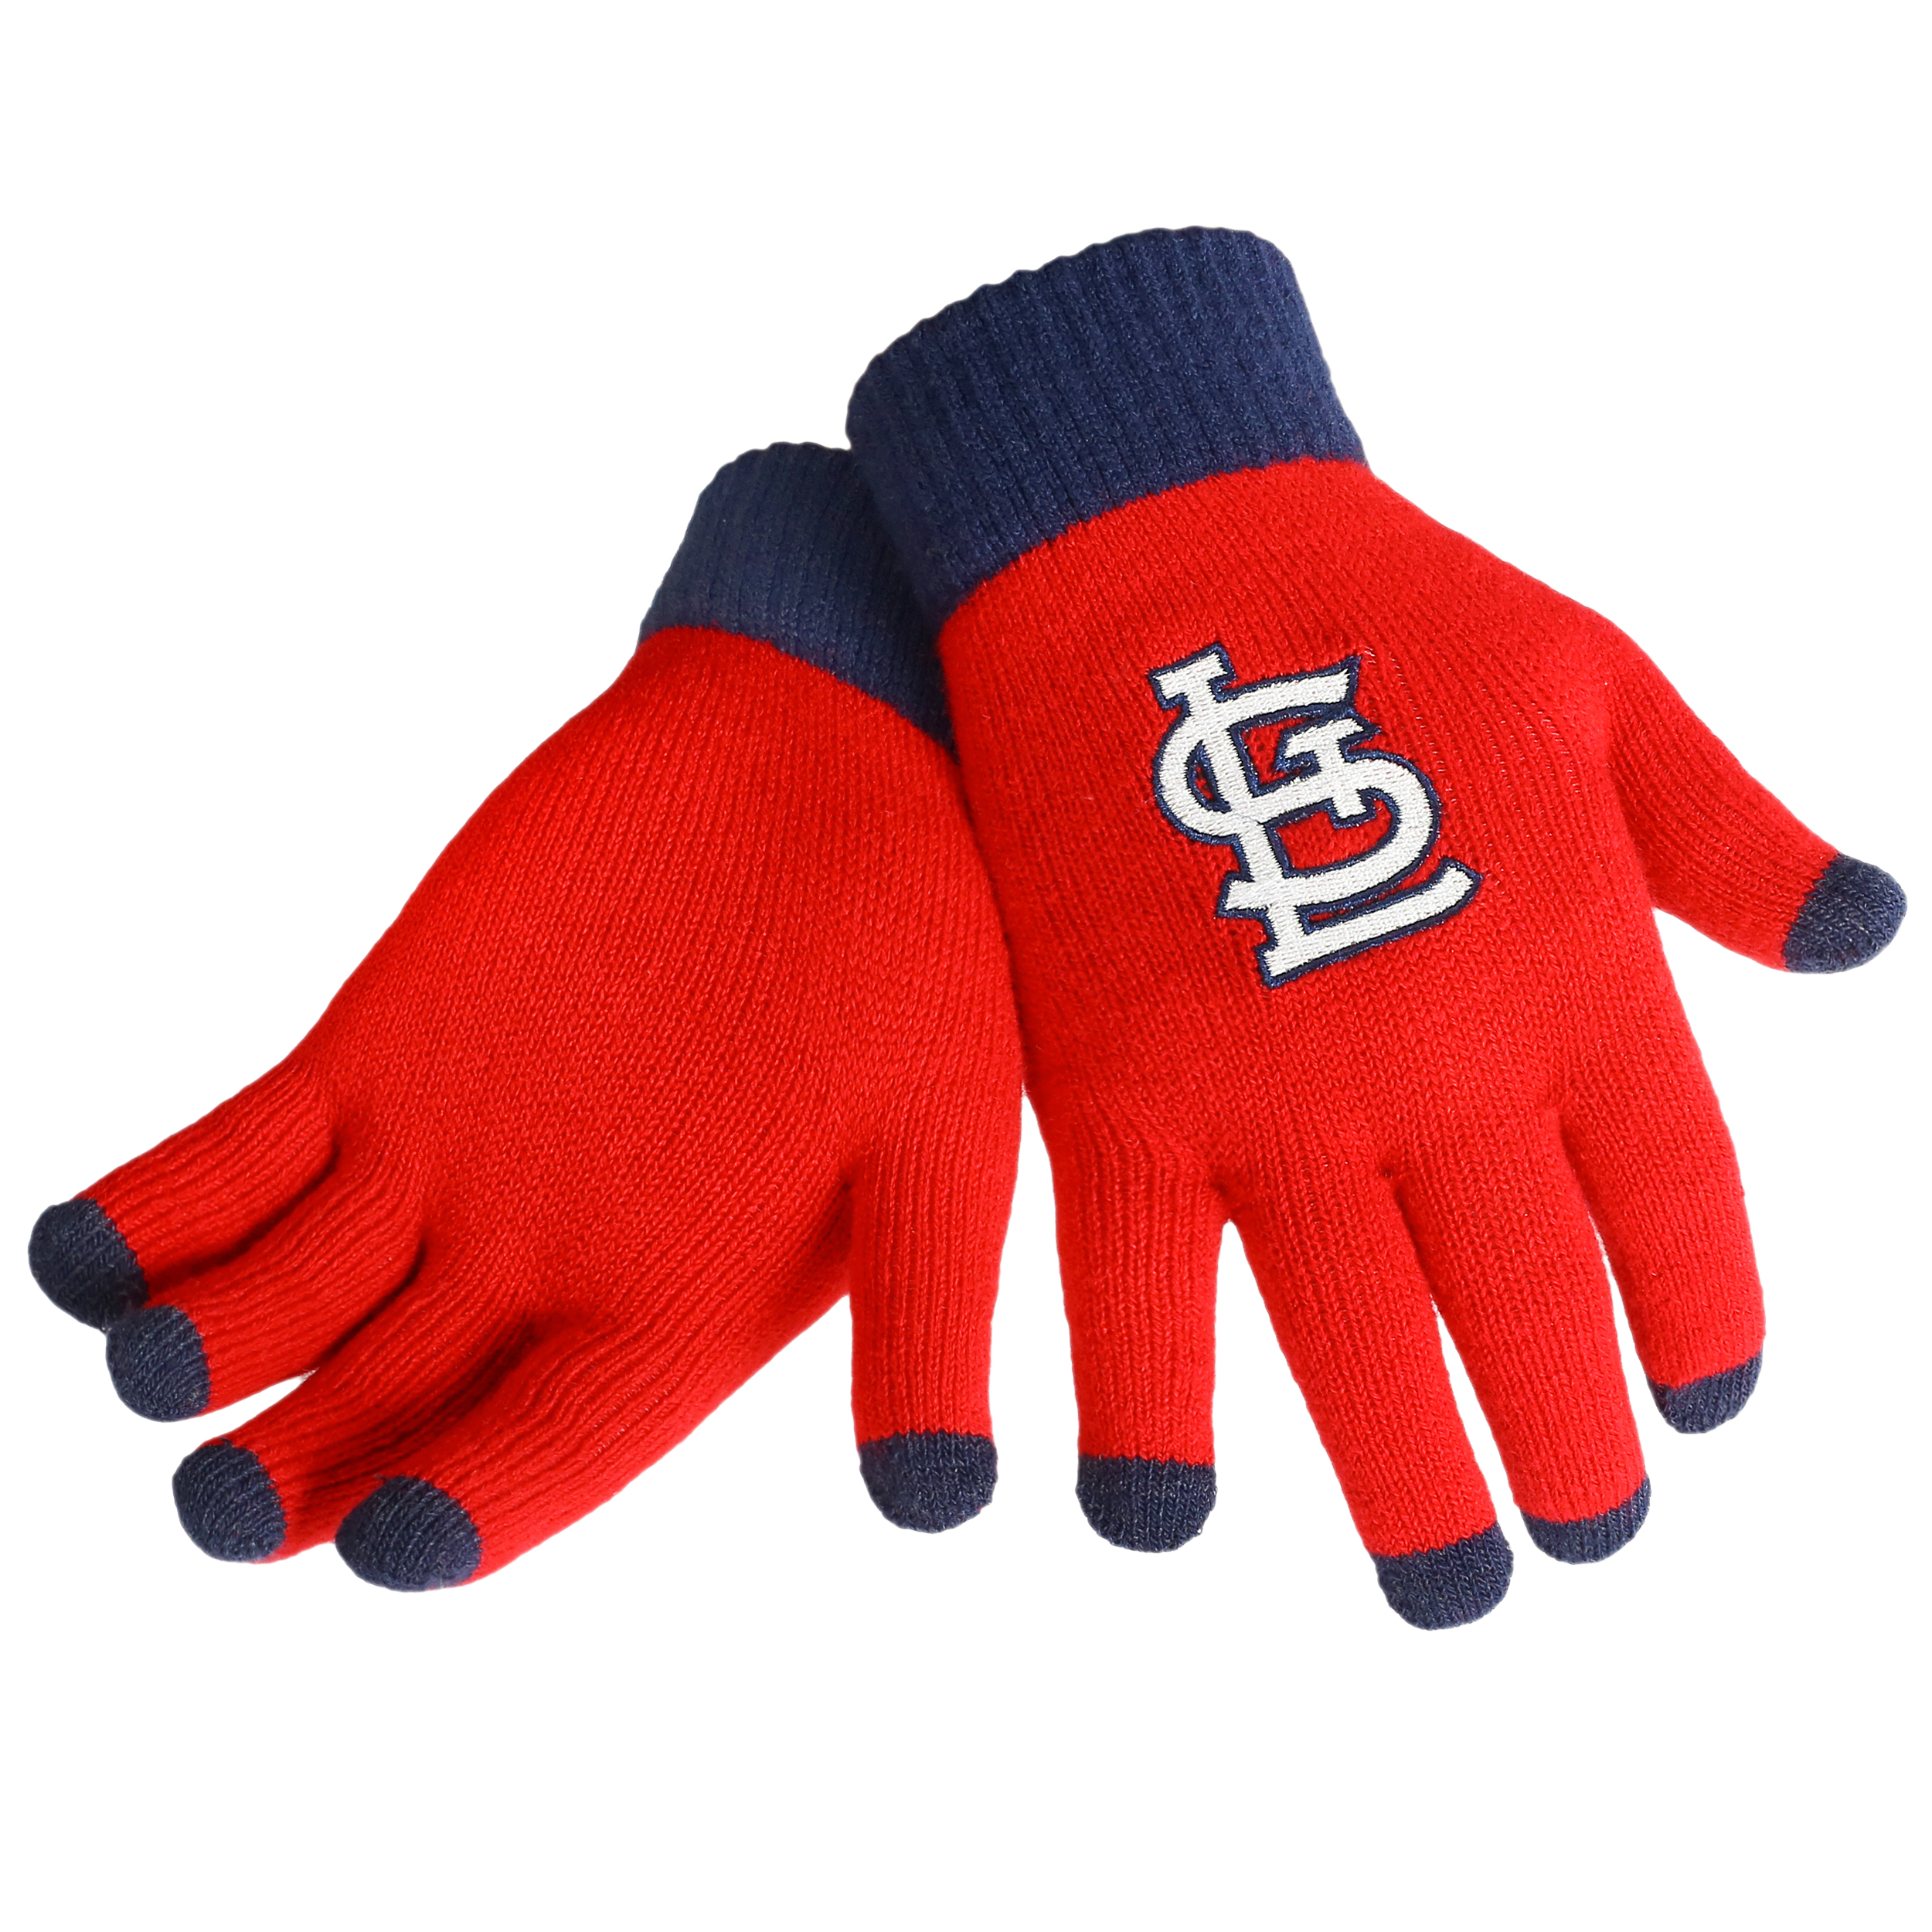 St. Louis Cardinals Official MLB Glove Solid Outdoor Winter Stretch Knit by Forever Collectibles 262183 by Forever Collectibles